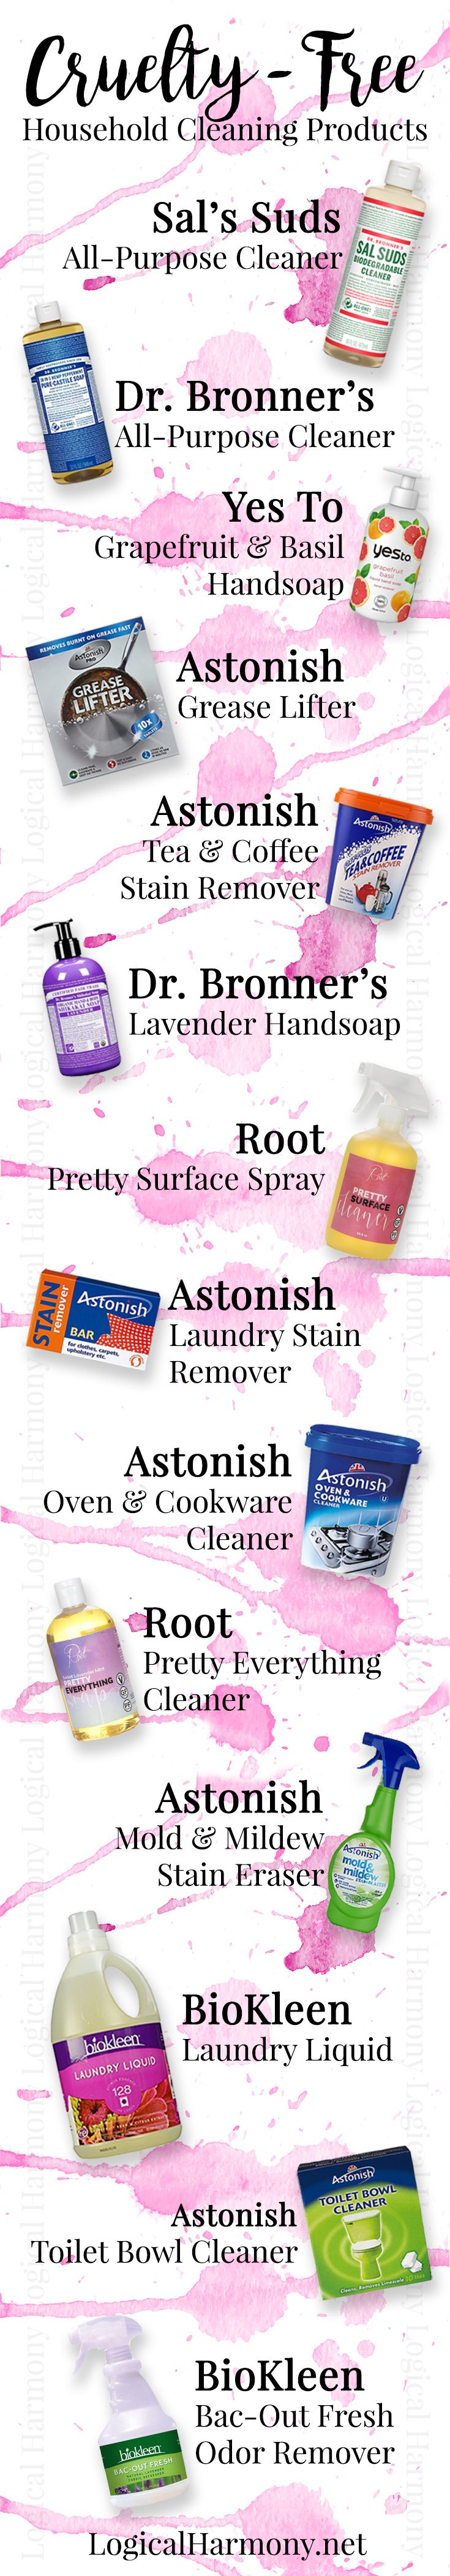 Looking for cruelty-free cleaning products? Find out what some of your options are on Logical Harmony! #crueltyfree #logicalharmony